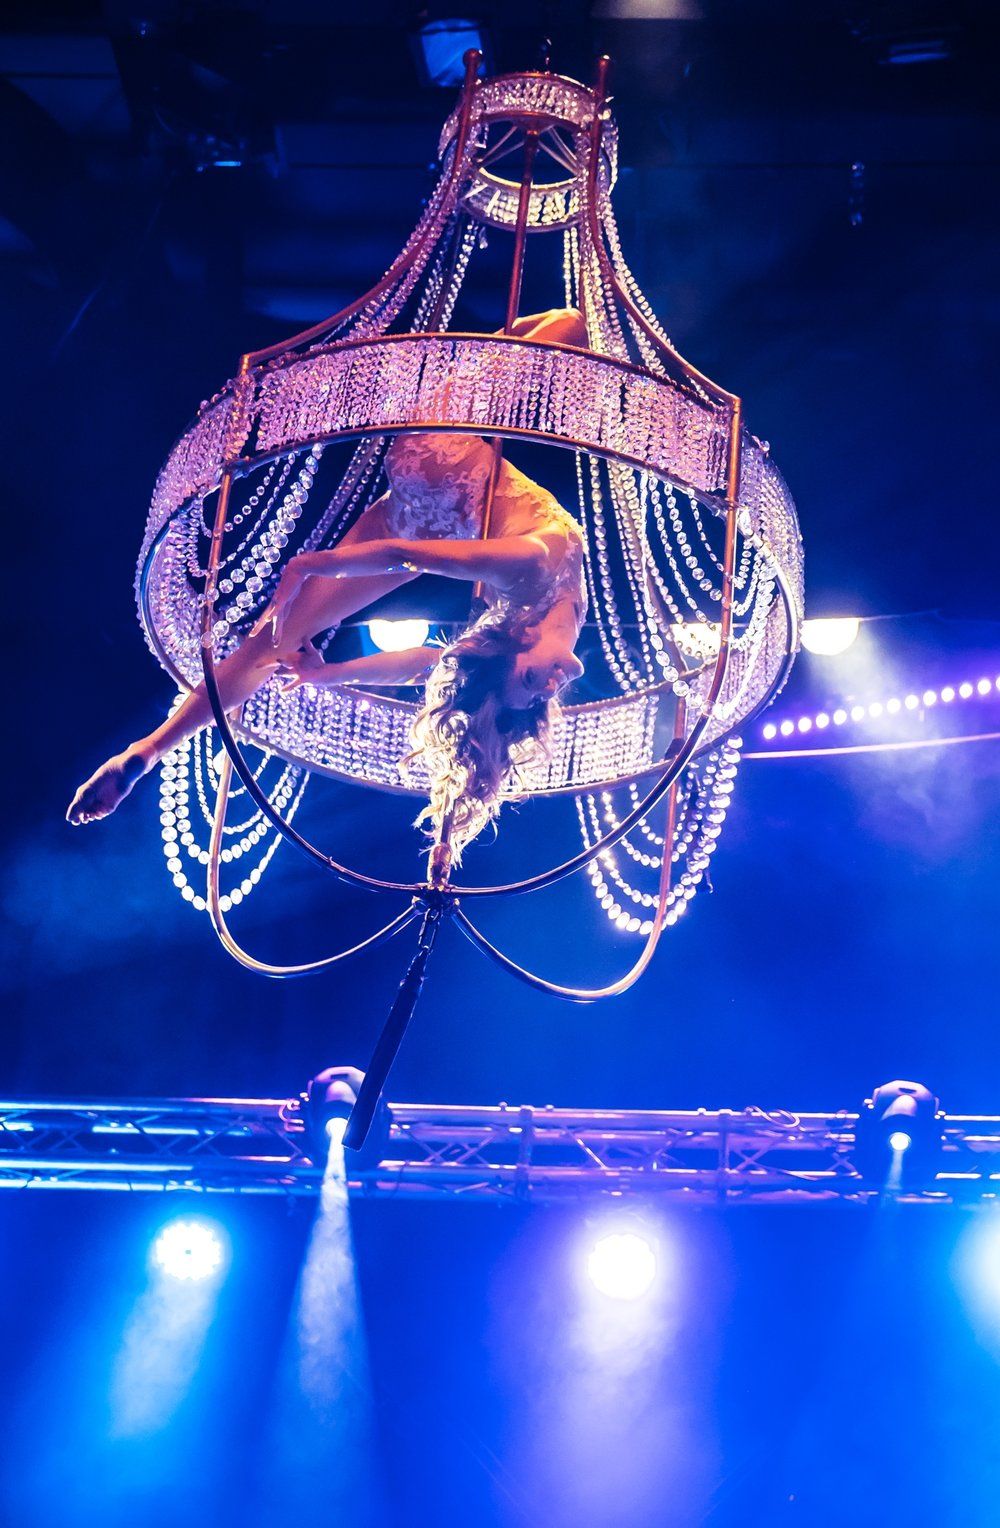 Aerial Chandelier - Kronleuchter Luftartistin - Flying Chandelier Showact - Air Candy Luftakrobatik Berlin